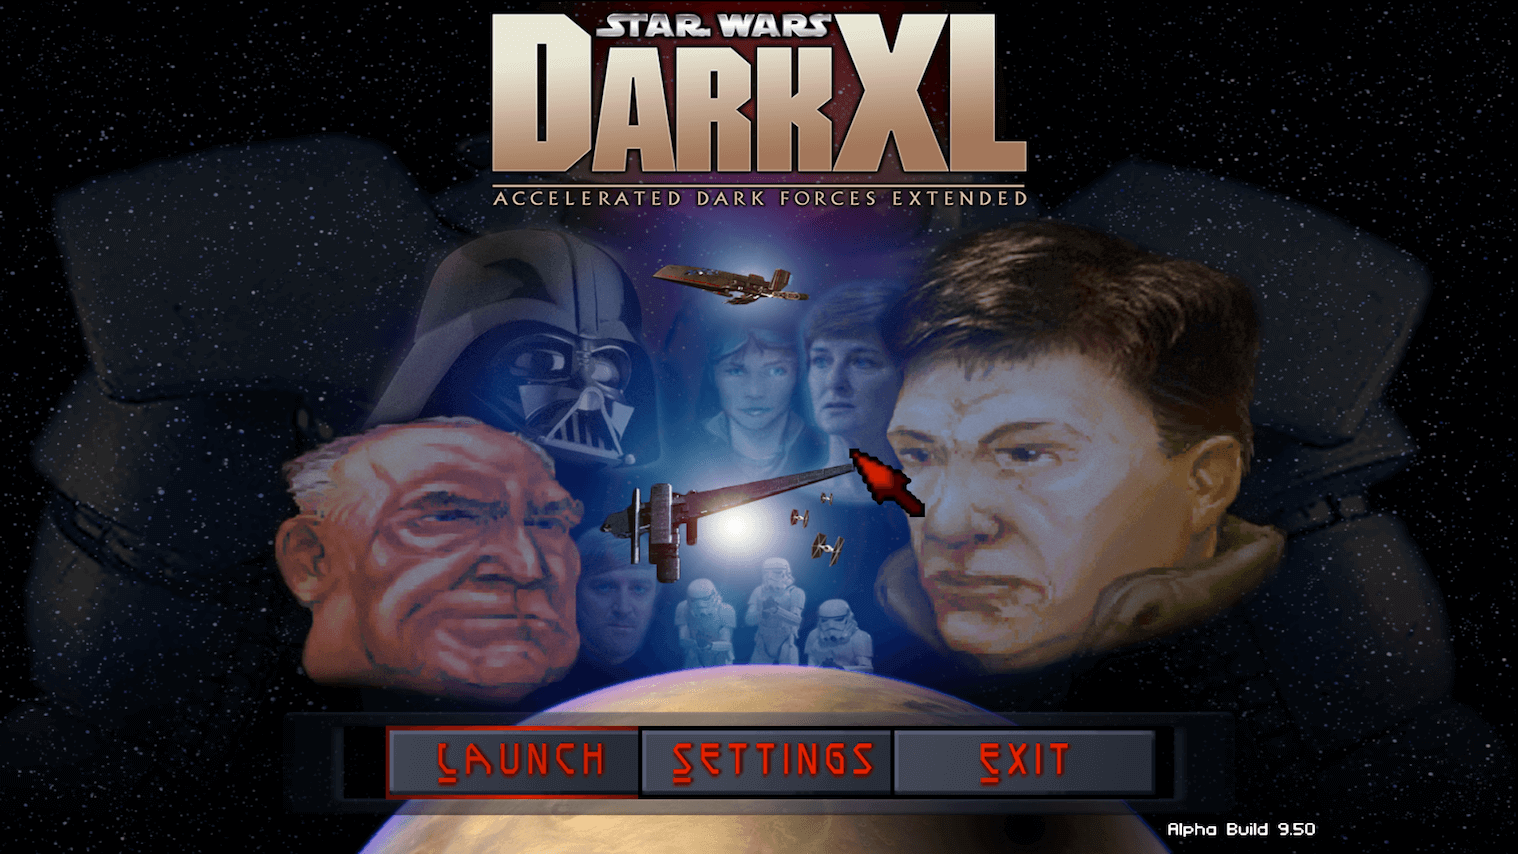 Play Star Wars: Dark Forces on Windows 7-10 using DarkXL